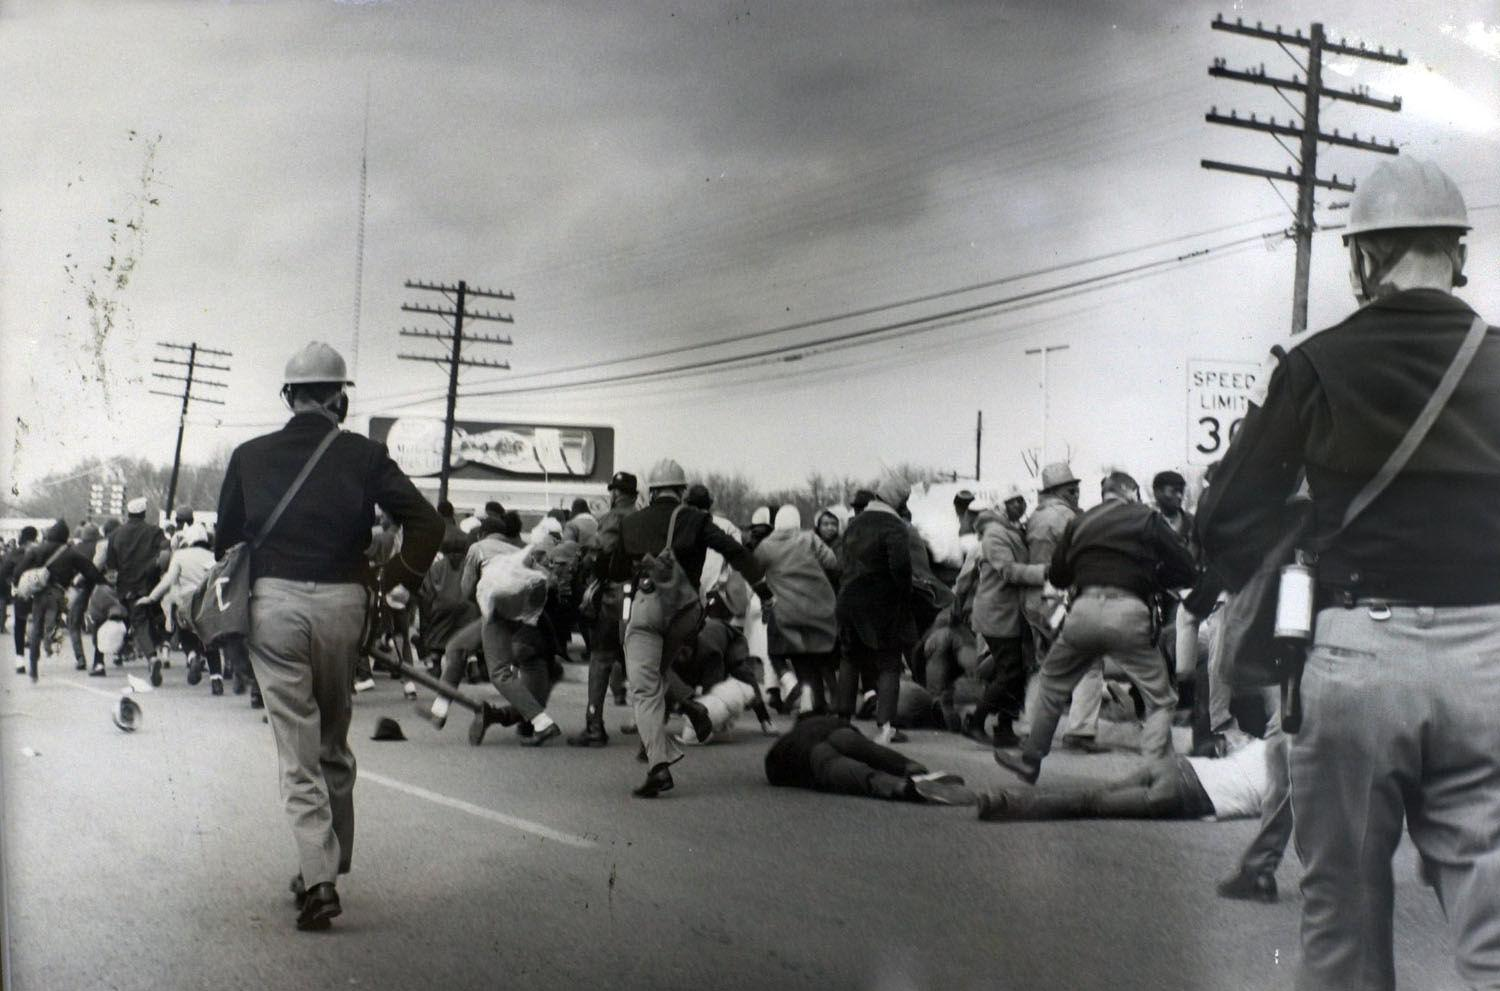 %3Cp%3EAs+the+final+dates+of+the+protests%E2%80%99+50th+anniversary+approach%2C+University+alumnus+John+Baird+reflects+on+his+experiences+at+the+protests+in+Selma%2C+Alabama.%3C%2Fp%3E